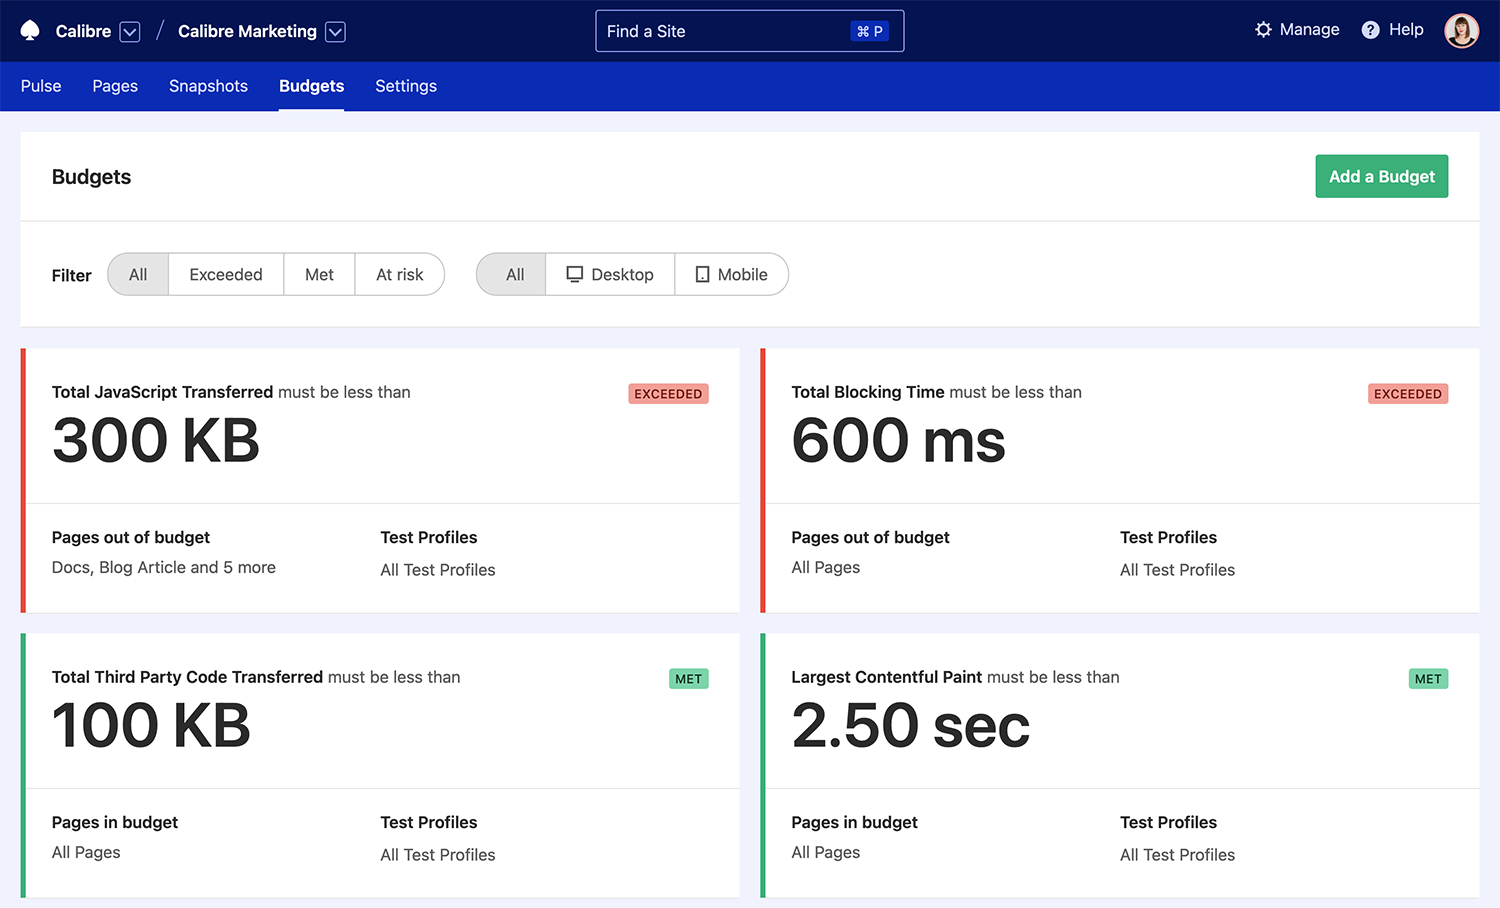 Performance Budget dashboard in Calibre showing JavaScript metrics in and out of budget.